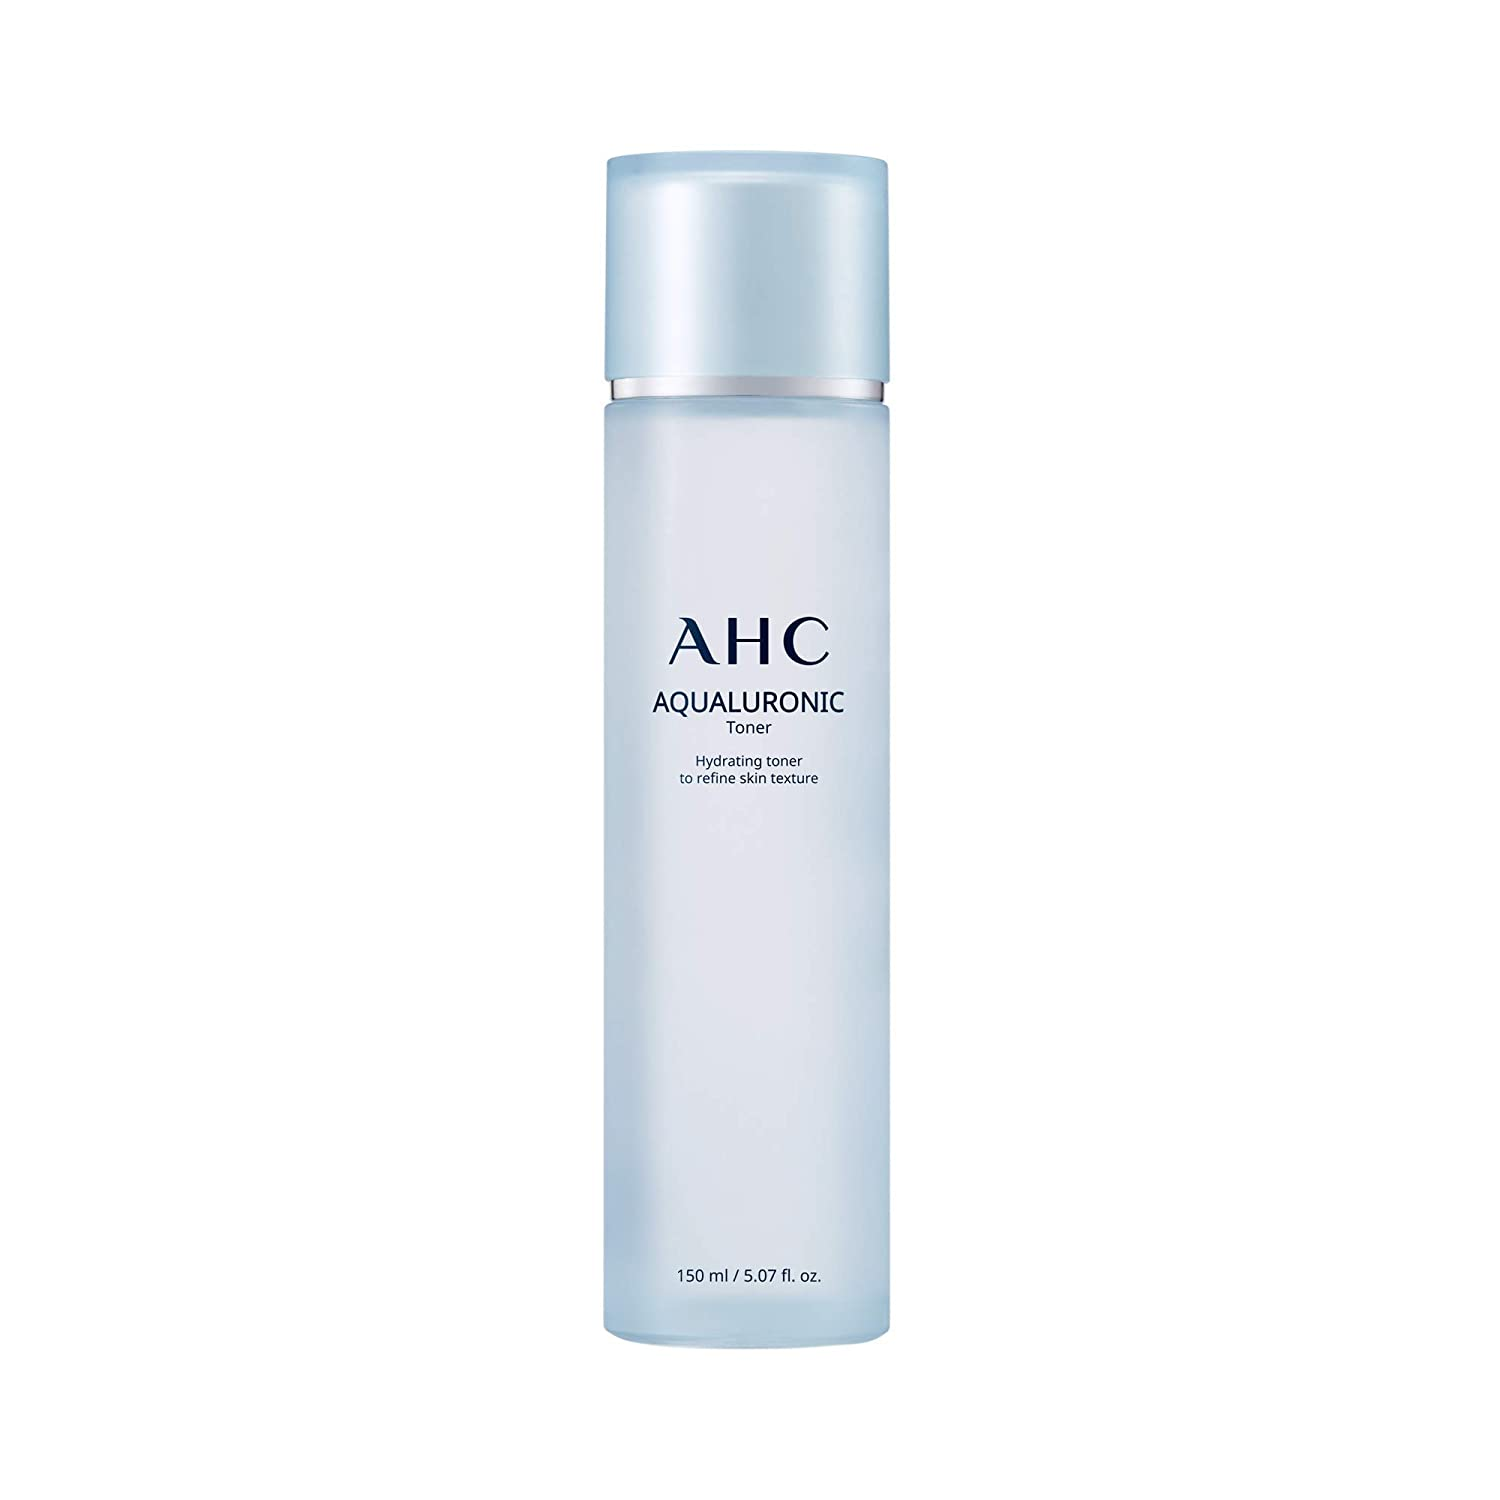 Aqualuronic Toner by AHC